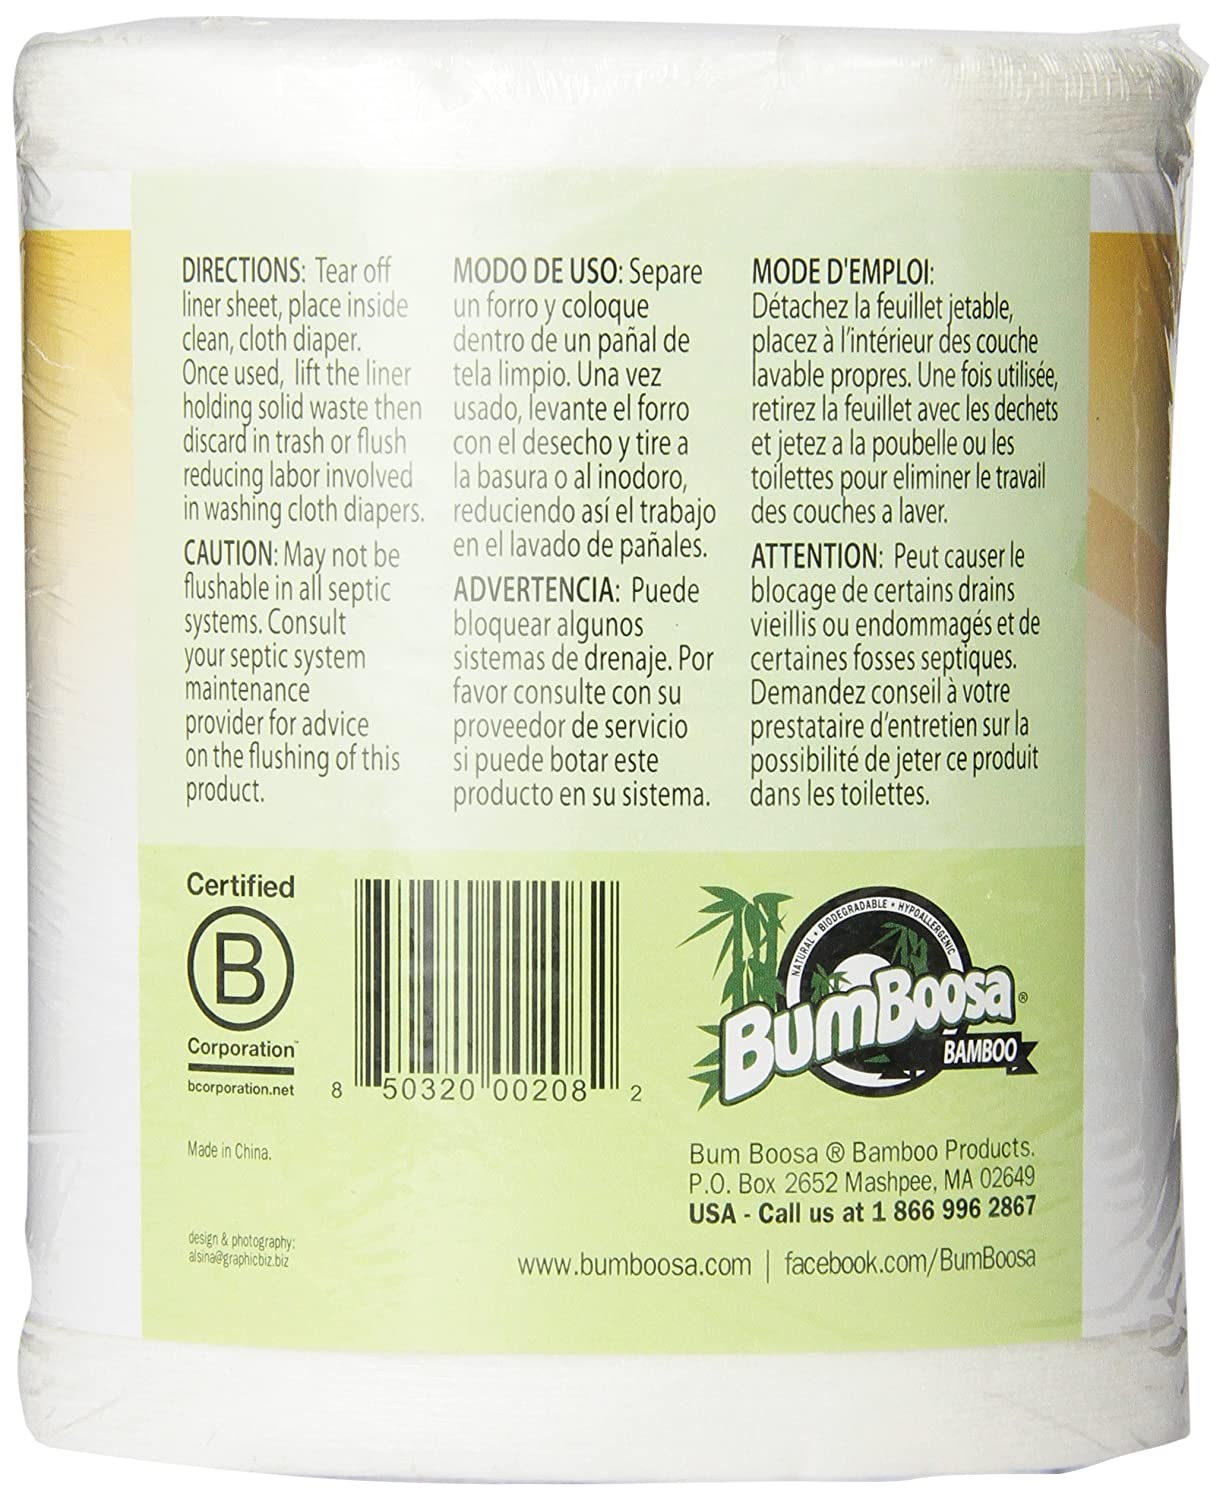 Amazon.com: Bum Boosa Bamboo Flushable Diaper Liners, 100 Sheets: Health & Personal Care